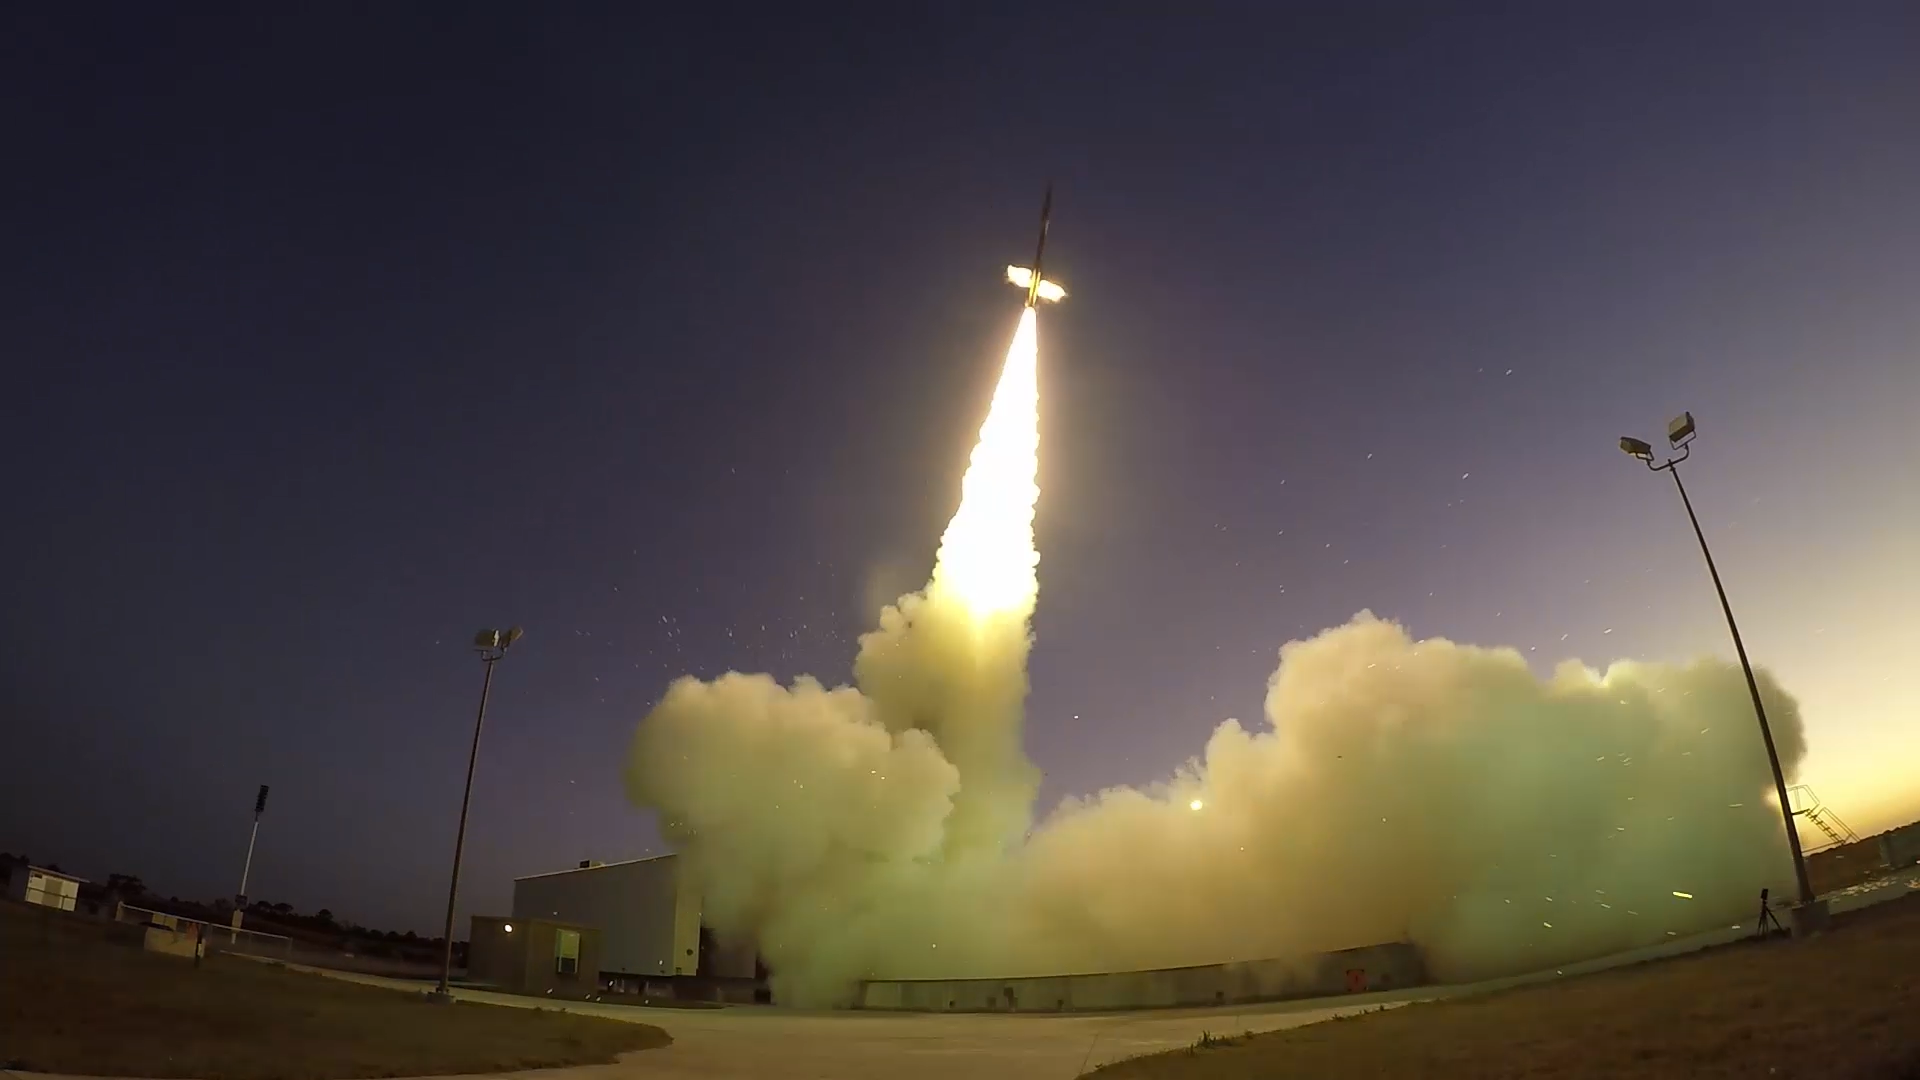 A 58-foot-tall Black Brant IX sounding rocket launches from NASA's Wallops Flight Facility on Oct. 4. This was the first test of the Mars 2020 mission's parachute-testing series, the Advanced Supersonic Parachute Inflation Research Experiment, or ASPIRE.